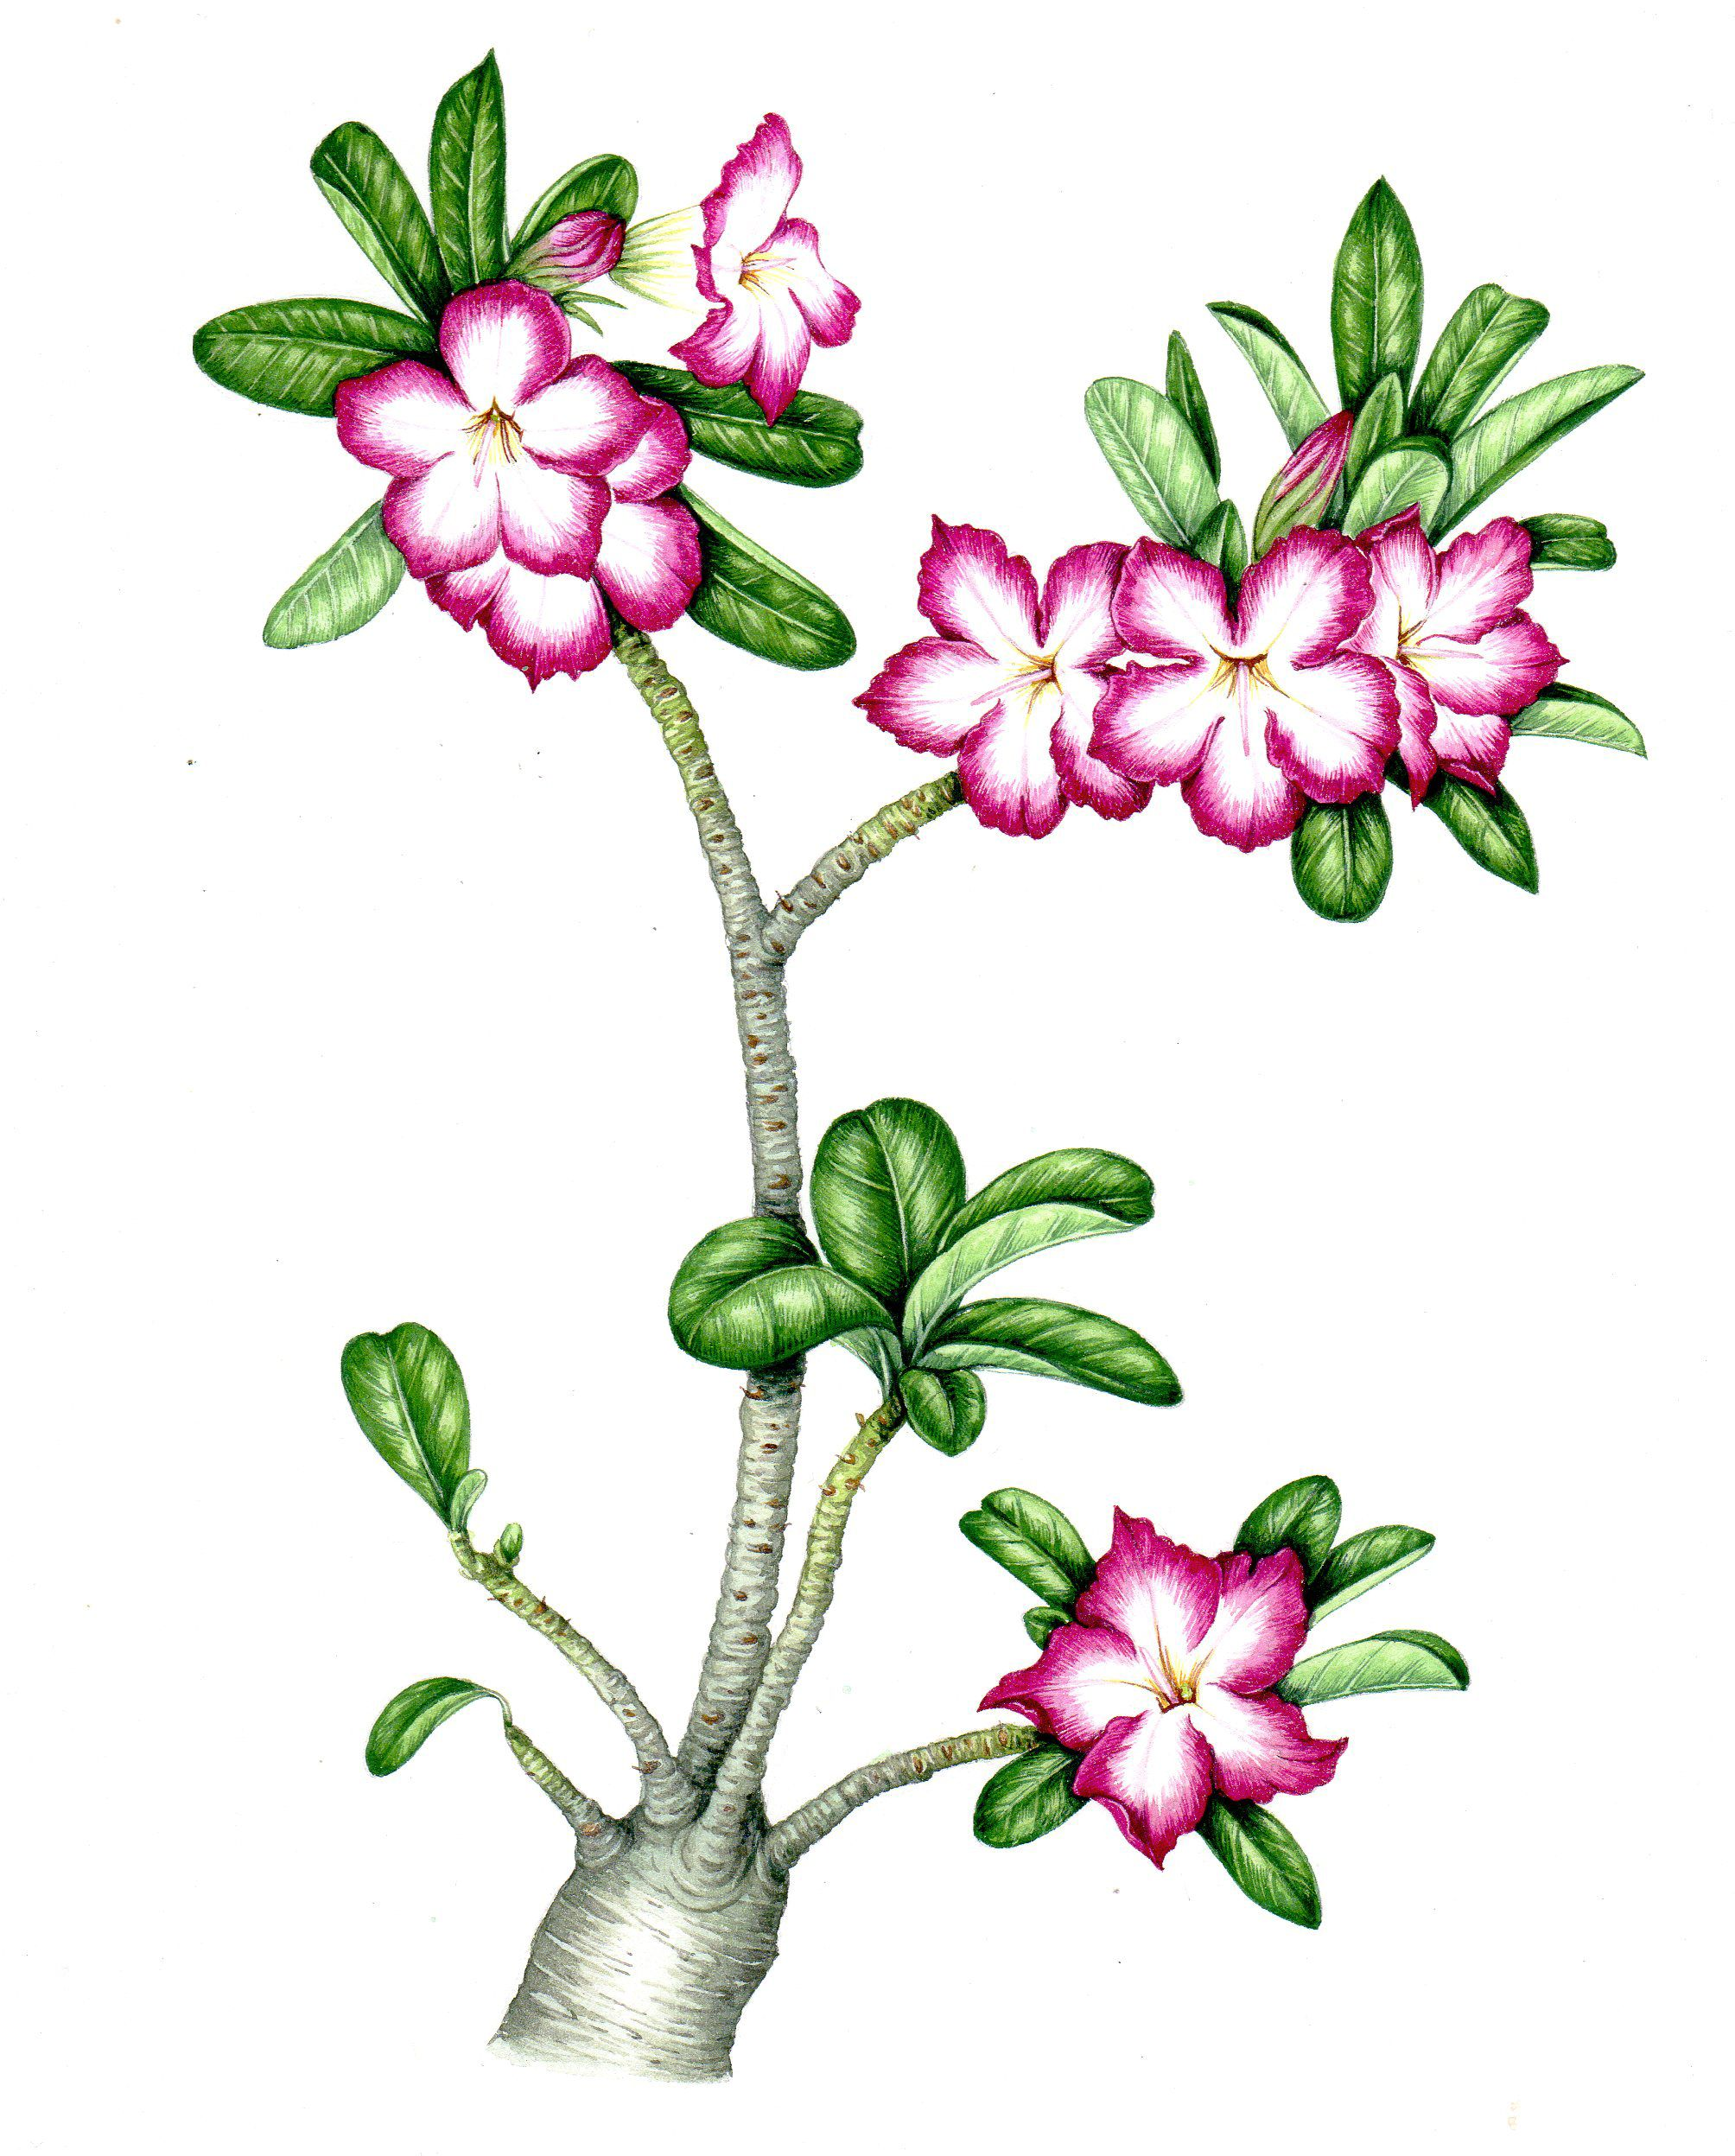 This Is The Desert Rose A Remarkable Plant Which Stores Liquid In Its Bulbous Roots And Thus Can Live In Very Ar Botanical Illustration Flower Art Desert Rose